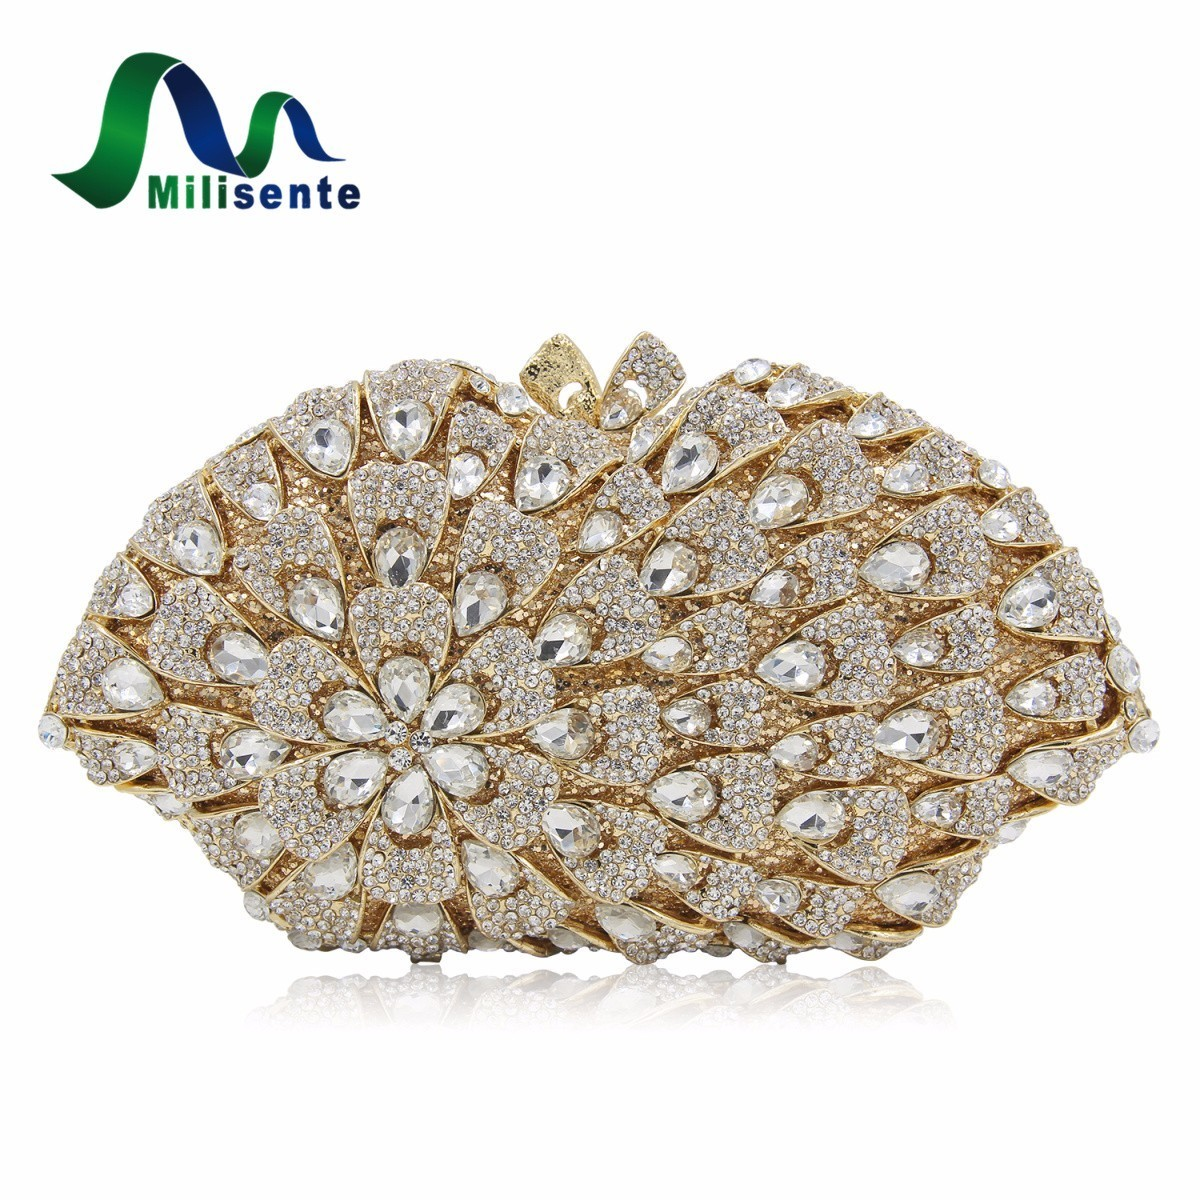 Milisente New Design Crystal Clutch Big Flower Women Evening Bag White Gold Ladies Wedding Purse High Quality milisente high quality luxury crystal evening bag women wedding purses lady party clutch handbag green blue gold white